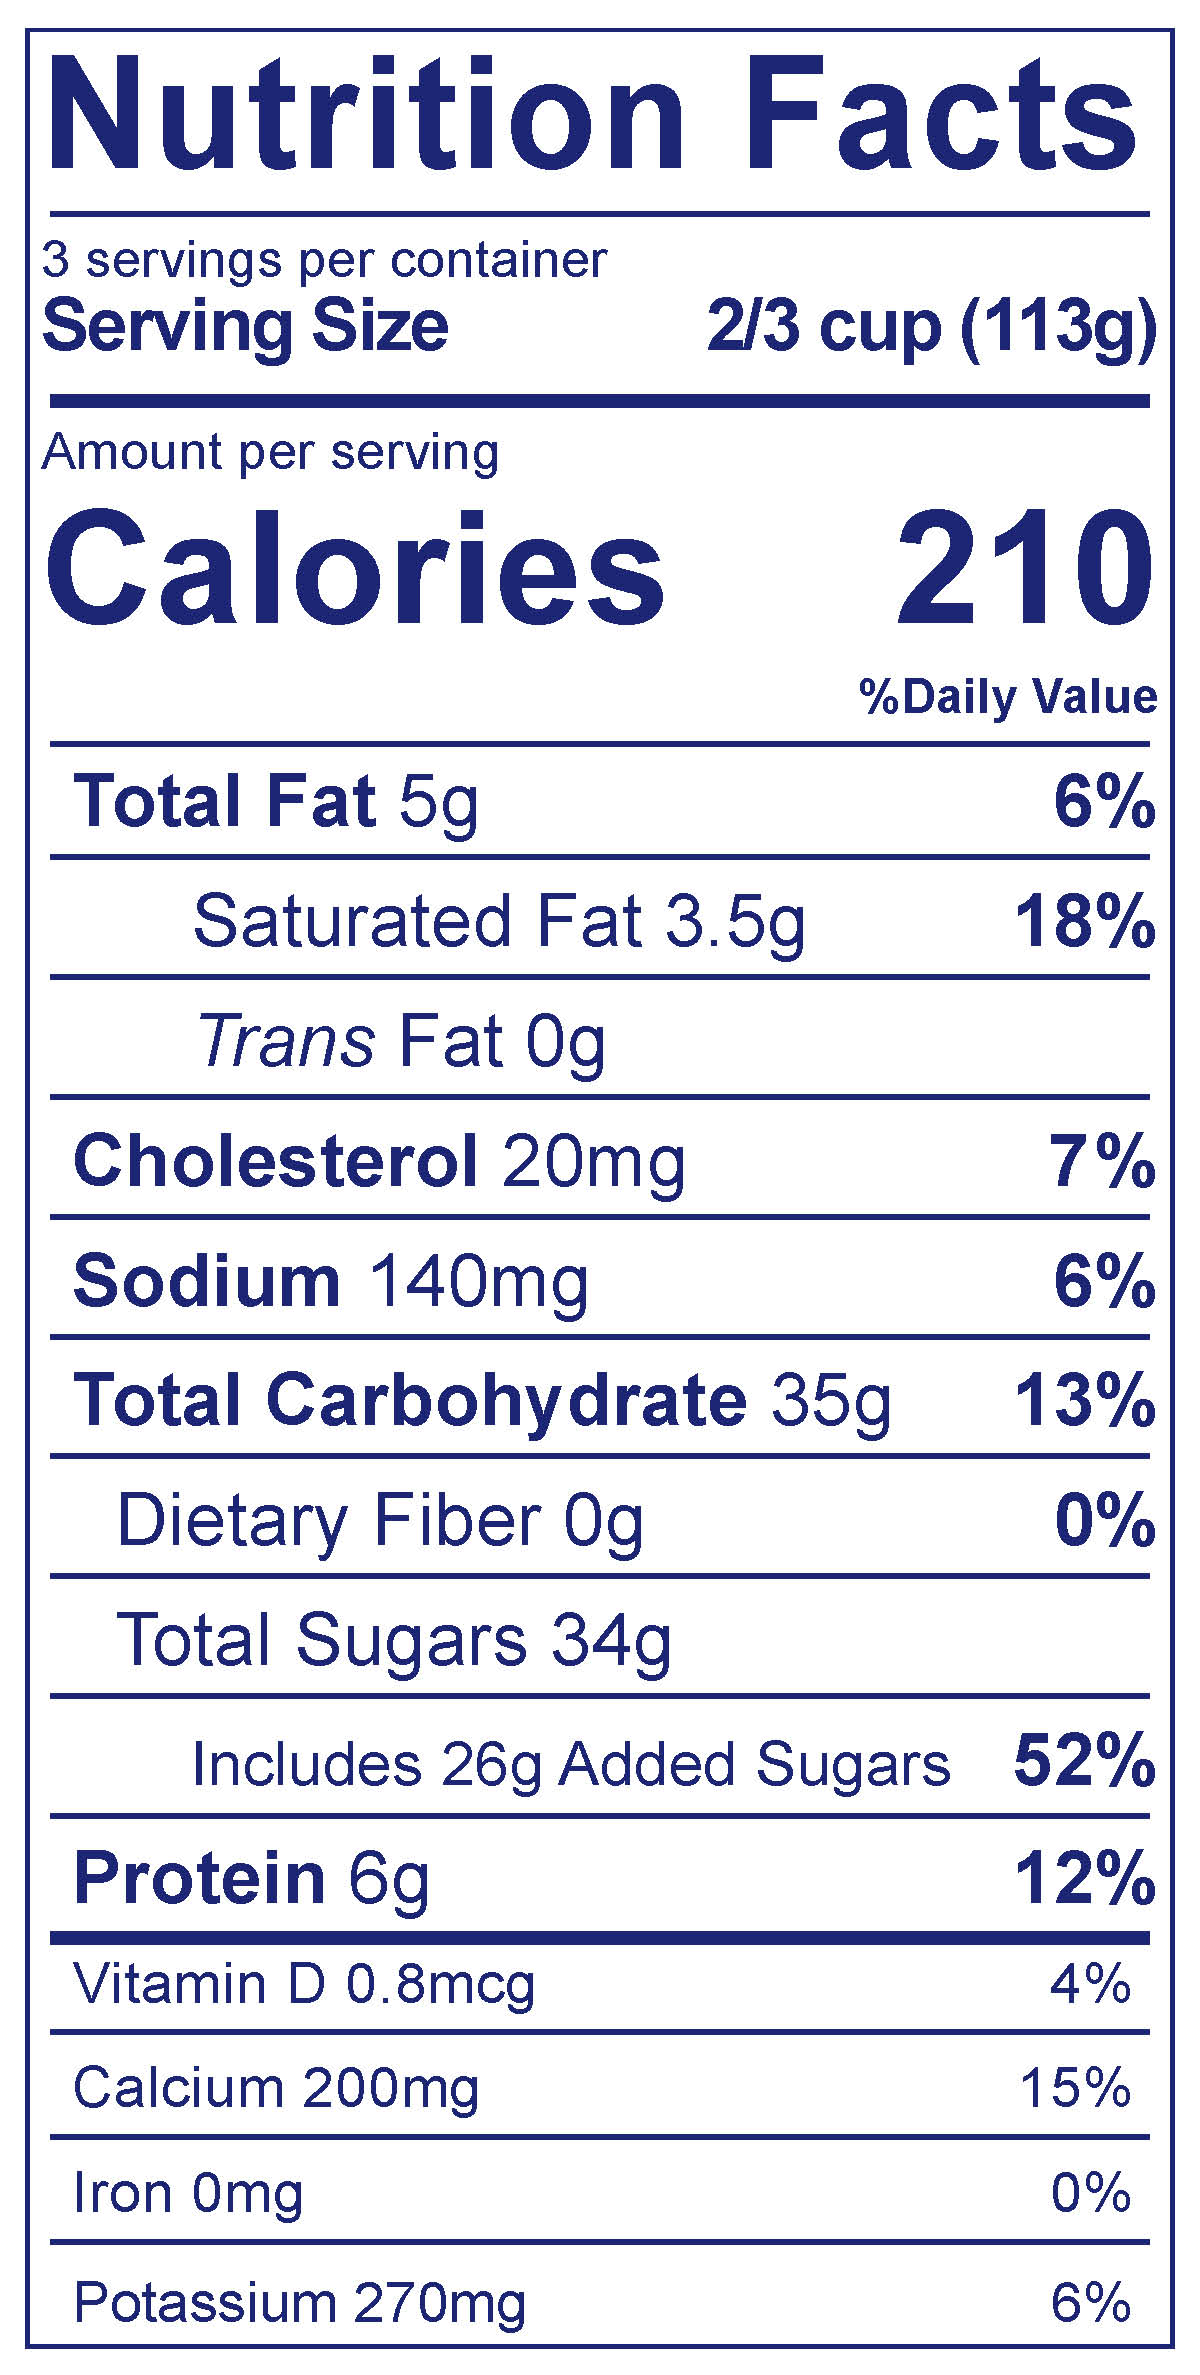 Frozen Yogurt Crème Caramel - Nutrition Facts